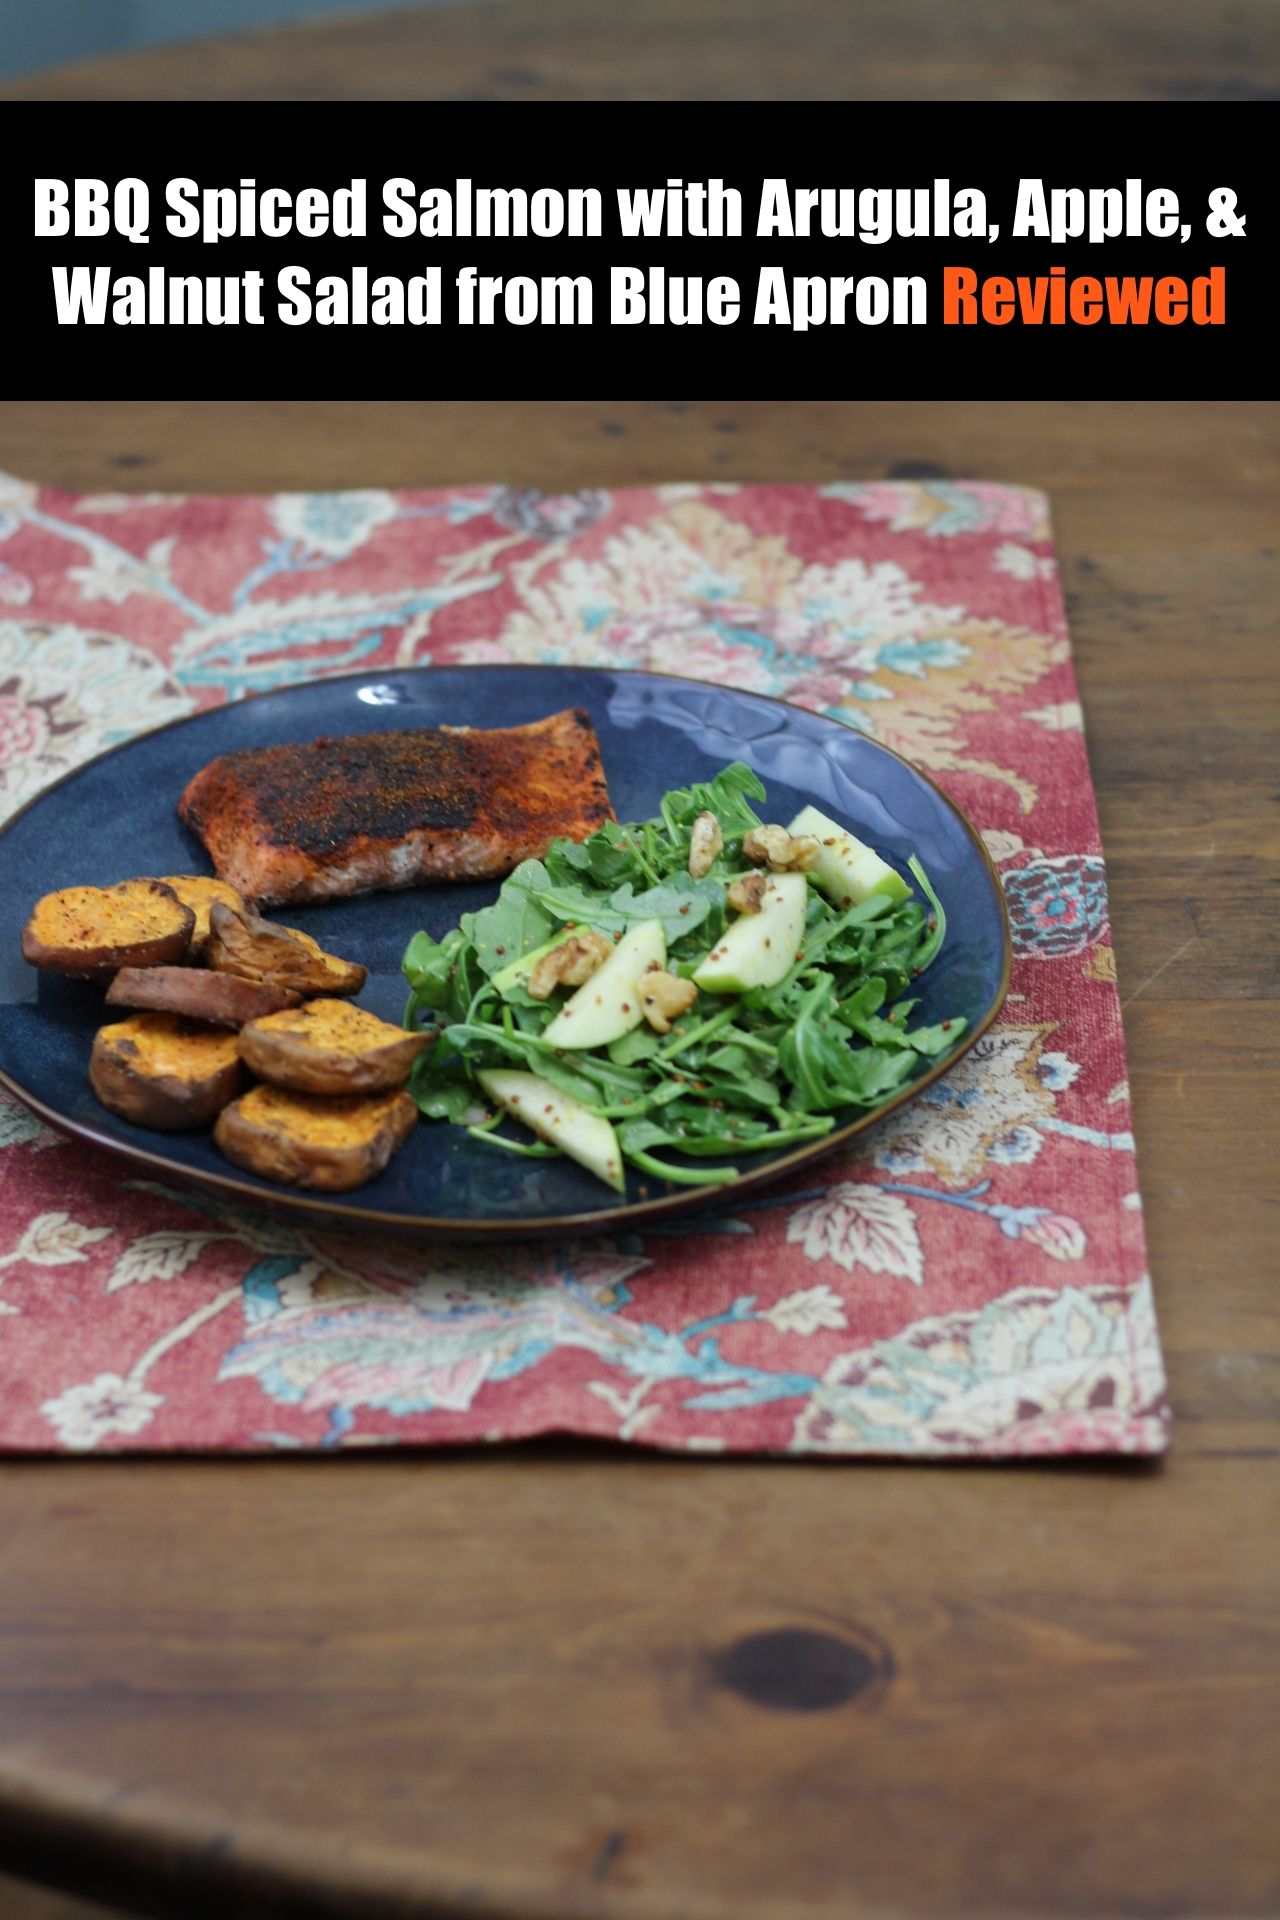 Blue apron tempura cod - 17 Best Images About Blue Apron Dinners On Pinterest Baked Sweet Potatoes Apple Walnut Salad And Roast Chicken